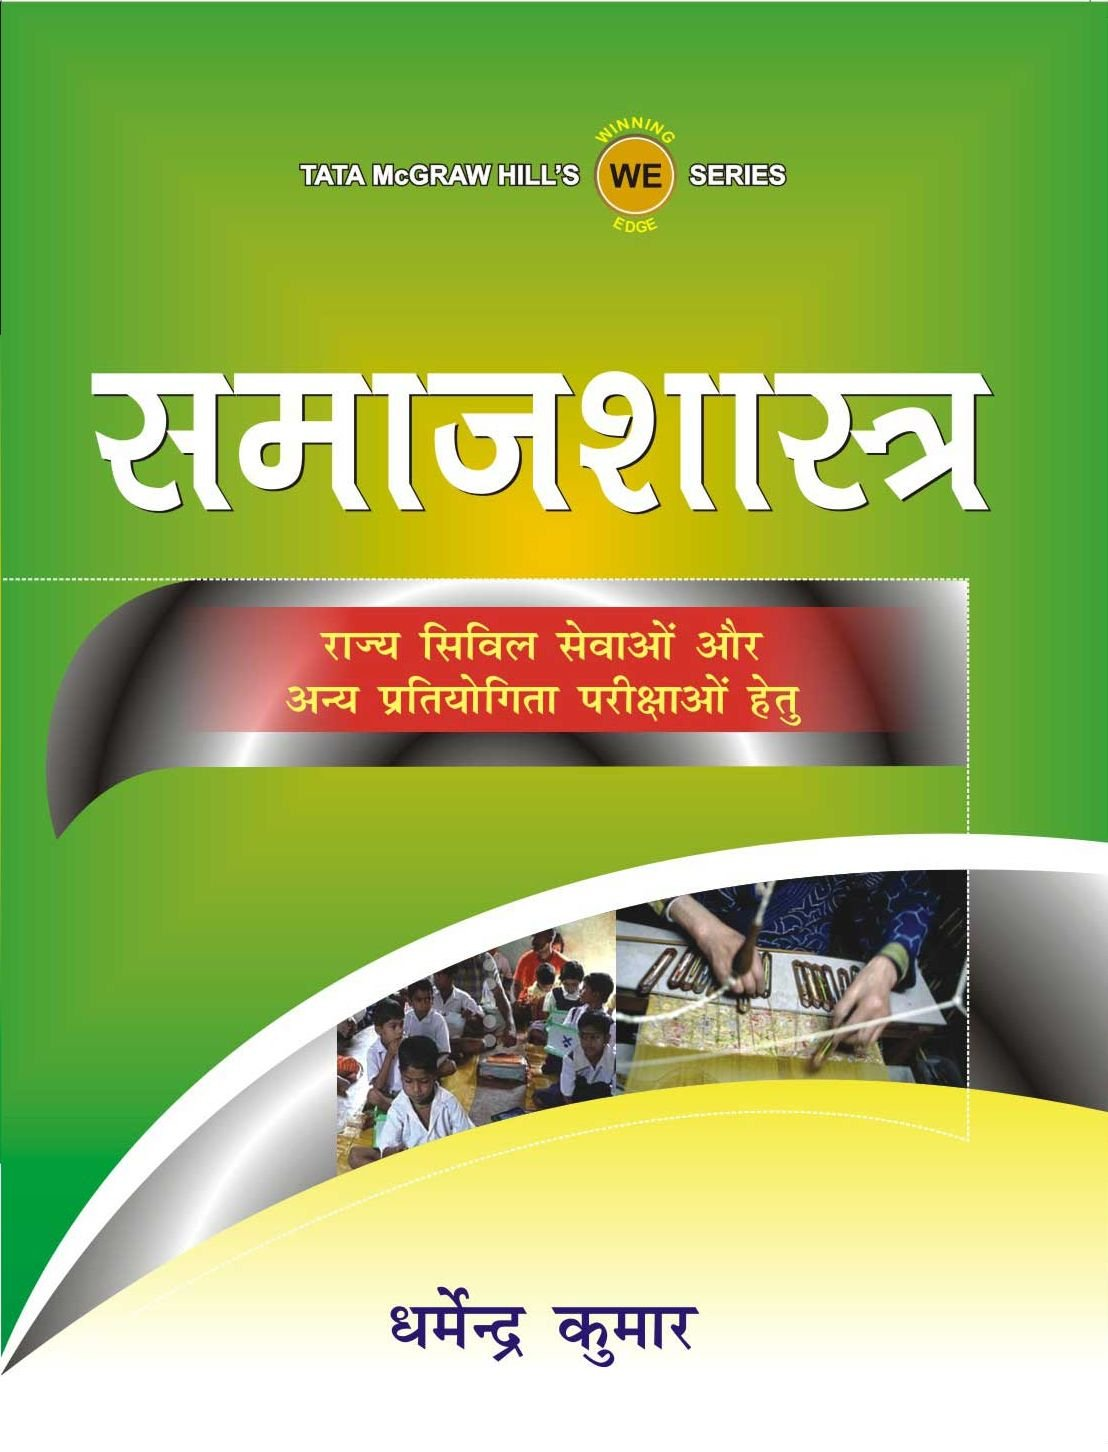 ias sociology books in hindi medium, sociology books for ias mains in hindi medium, best sociology books for ias in hindi medium, ias sociology books in hindi, sociology books in hindi for ias exam, sociology books in hindi for ias, sociology books in hindi medium for ias, sociology books in hindi for ias mains, sociology books for ias mains in hindi medium, sociology books for ias mains in hindi,